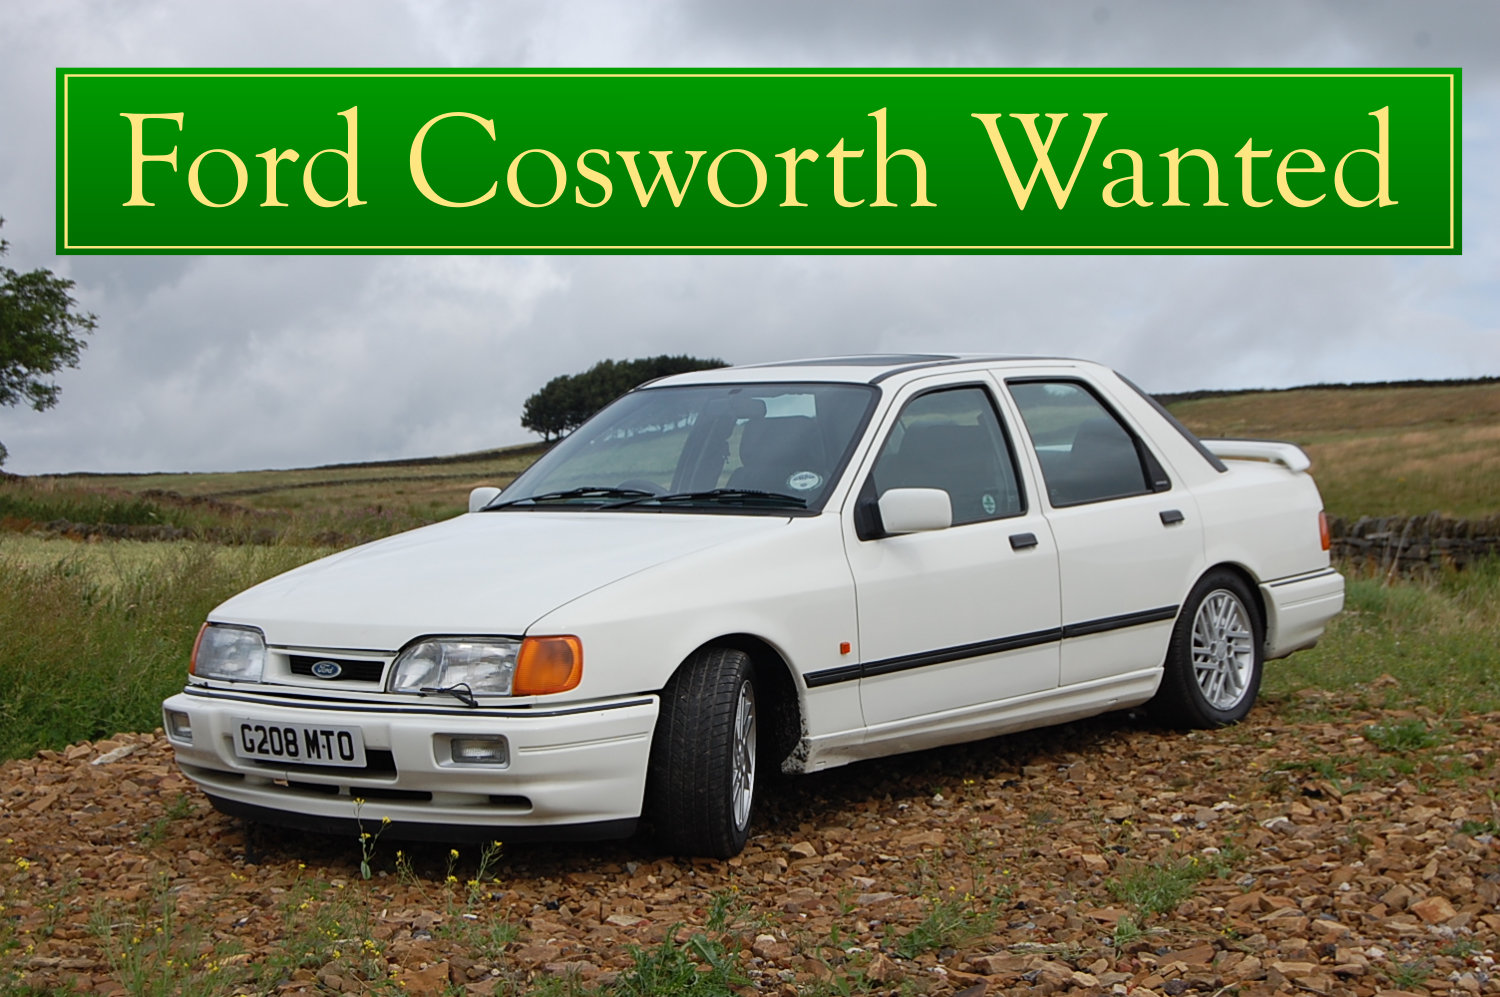 FORD COSWORTH WANTED, CLASSIC CARS WANTED, IMMEDIATE PAYMENT Wanted (picture 6 of 6)